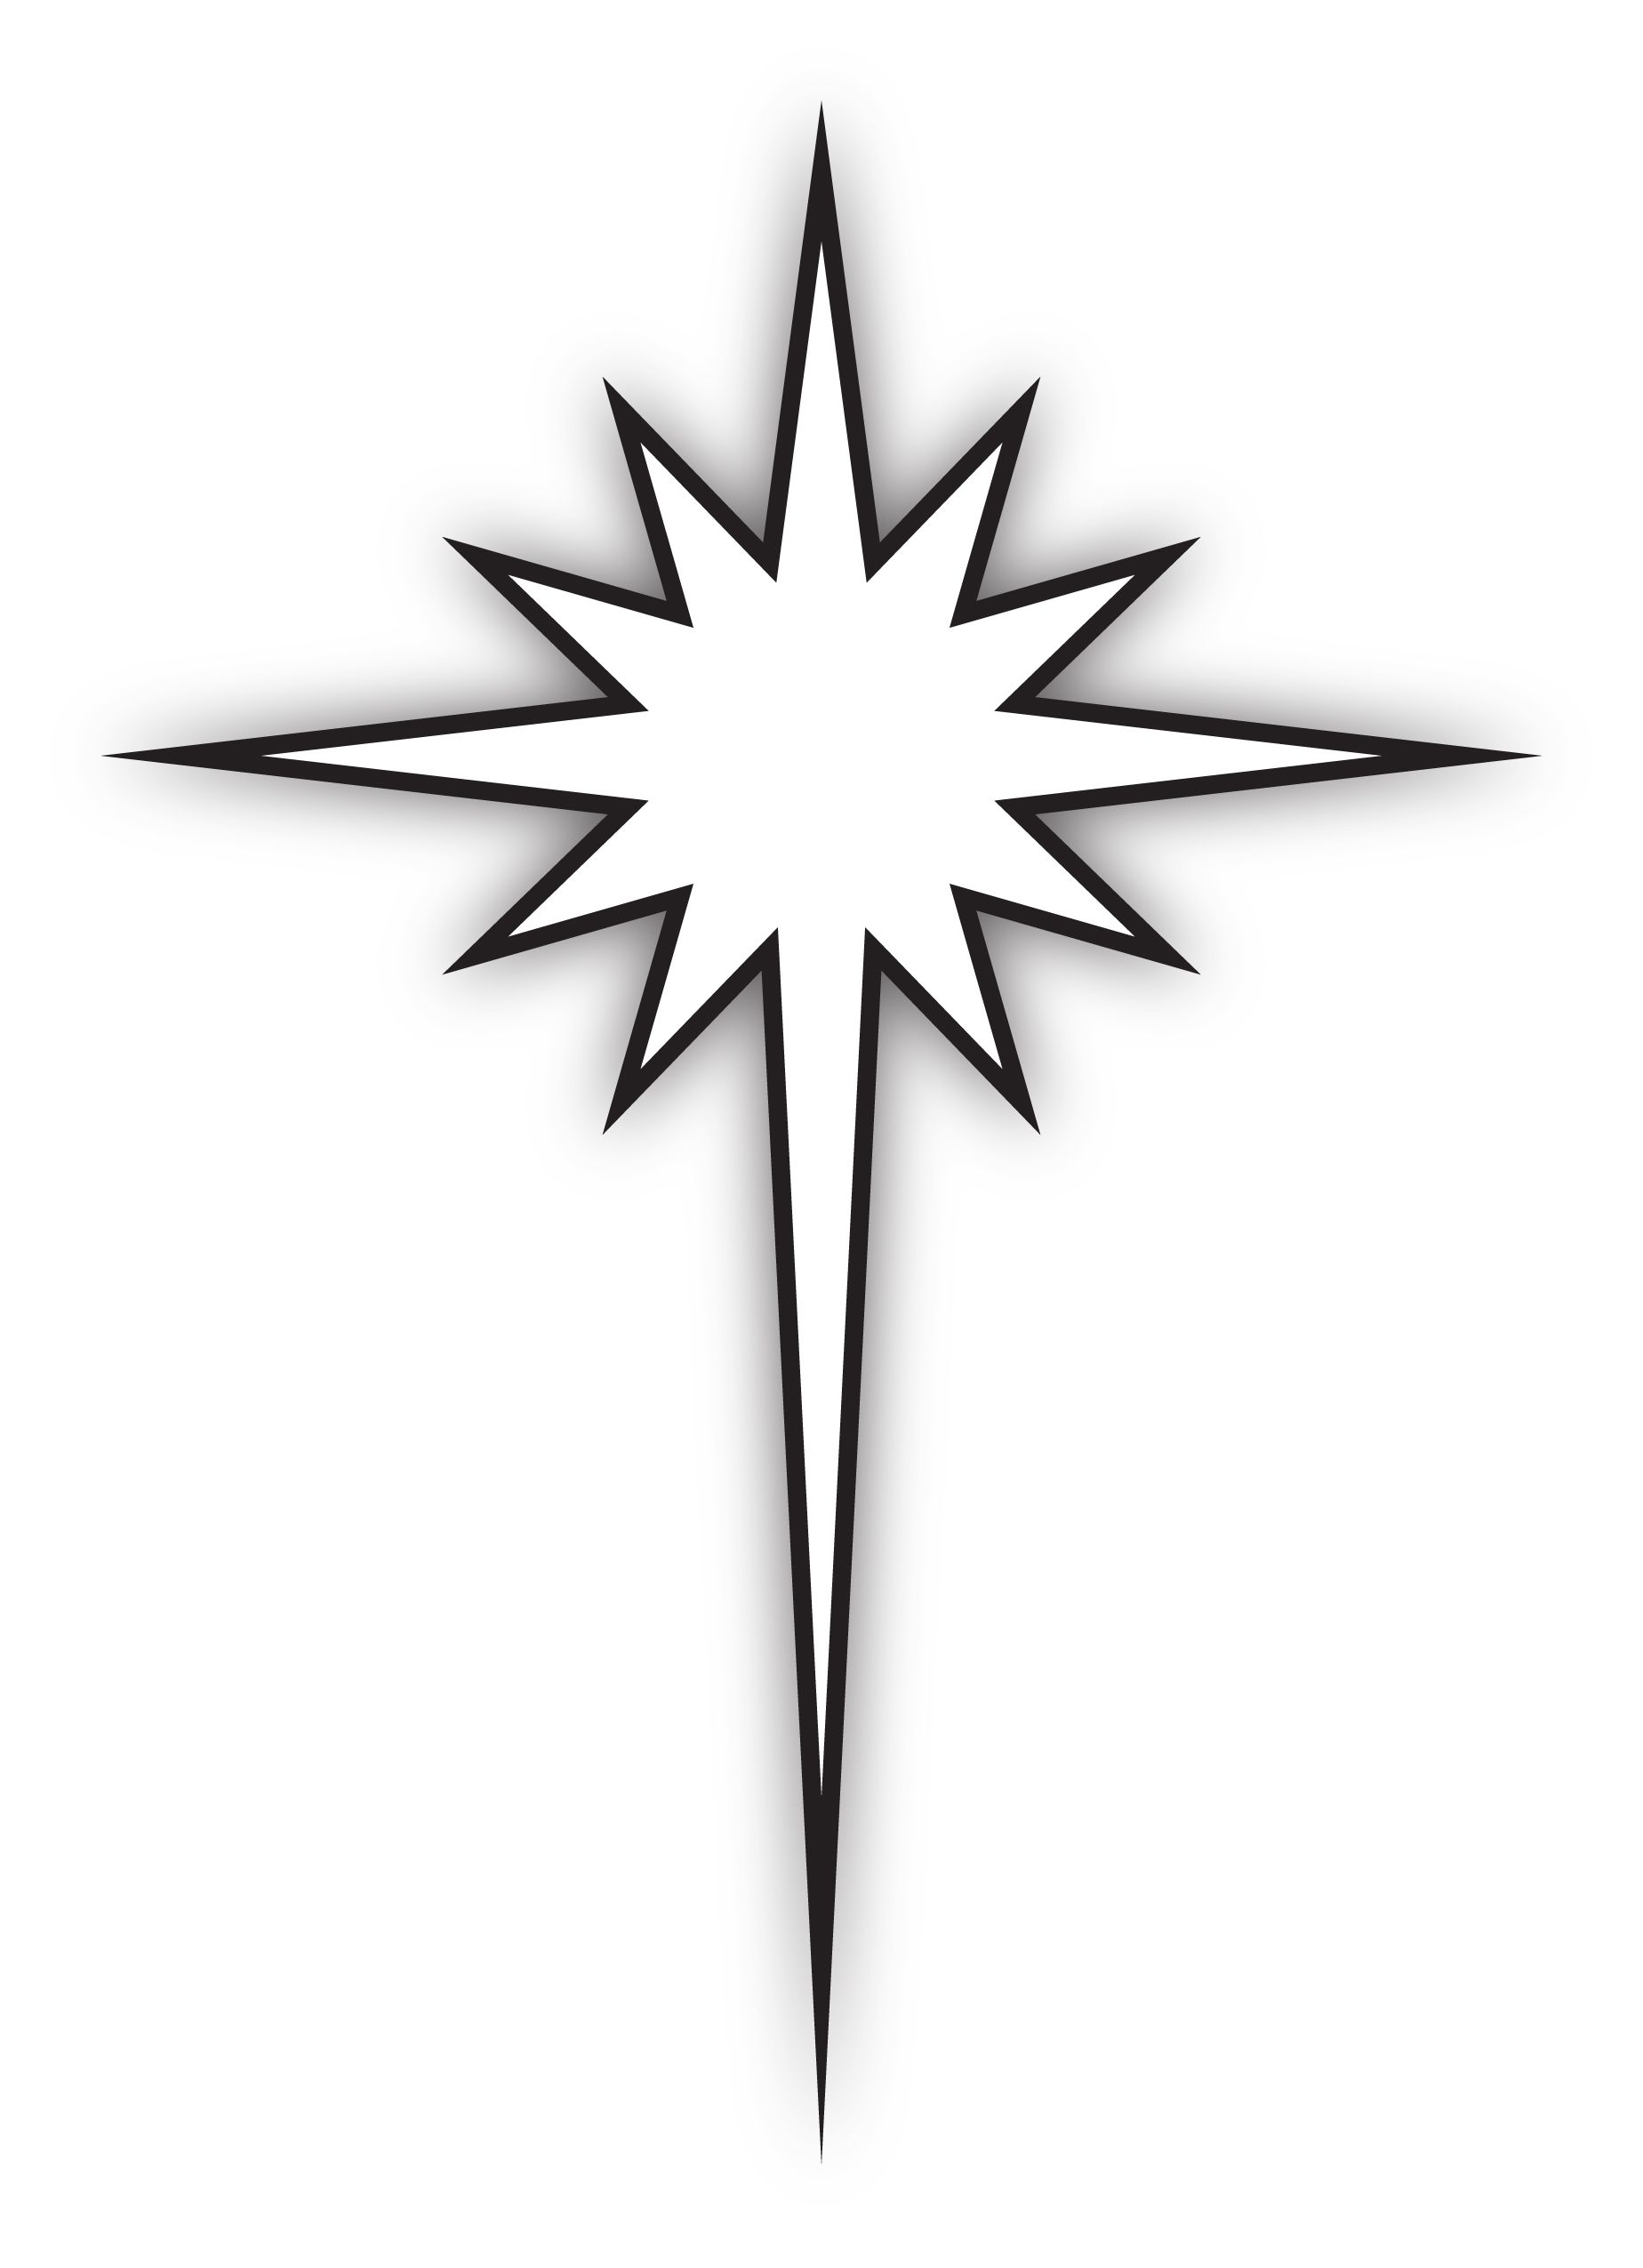 The logo merges the cross shape of Christ with the Epiphany.